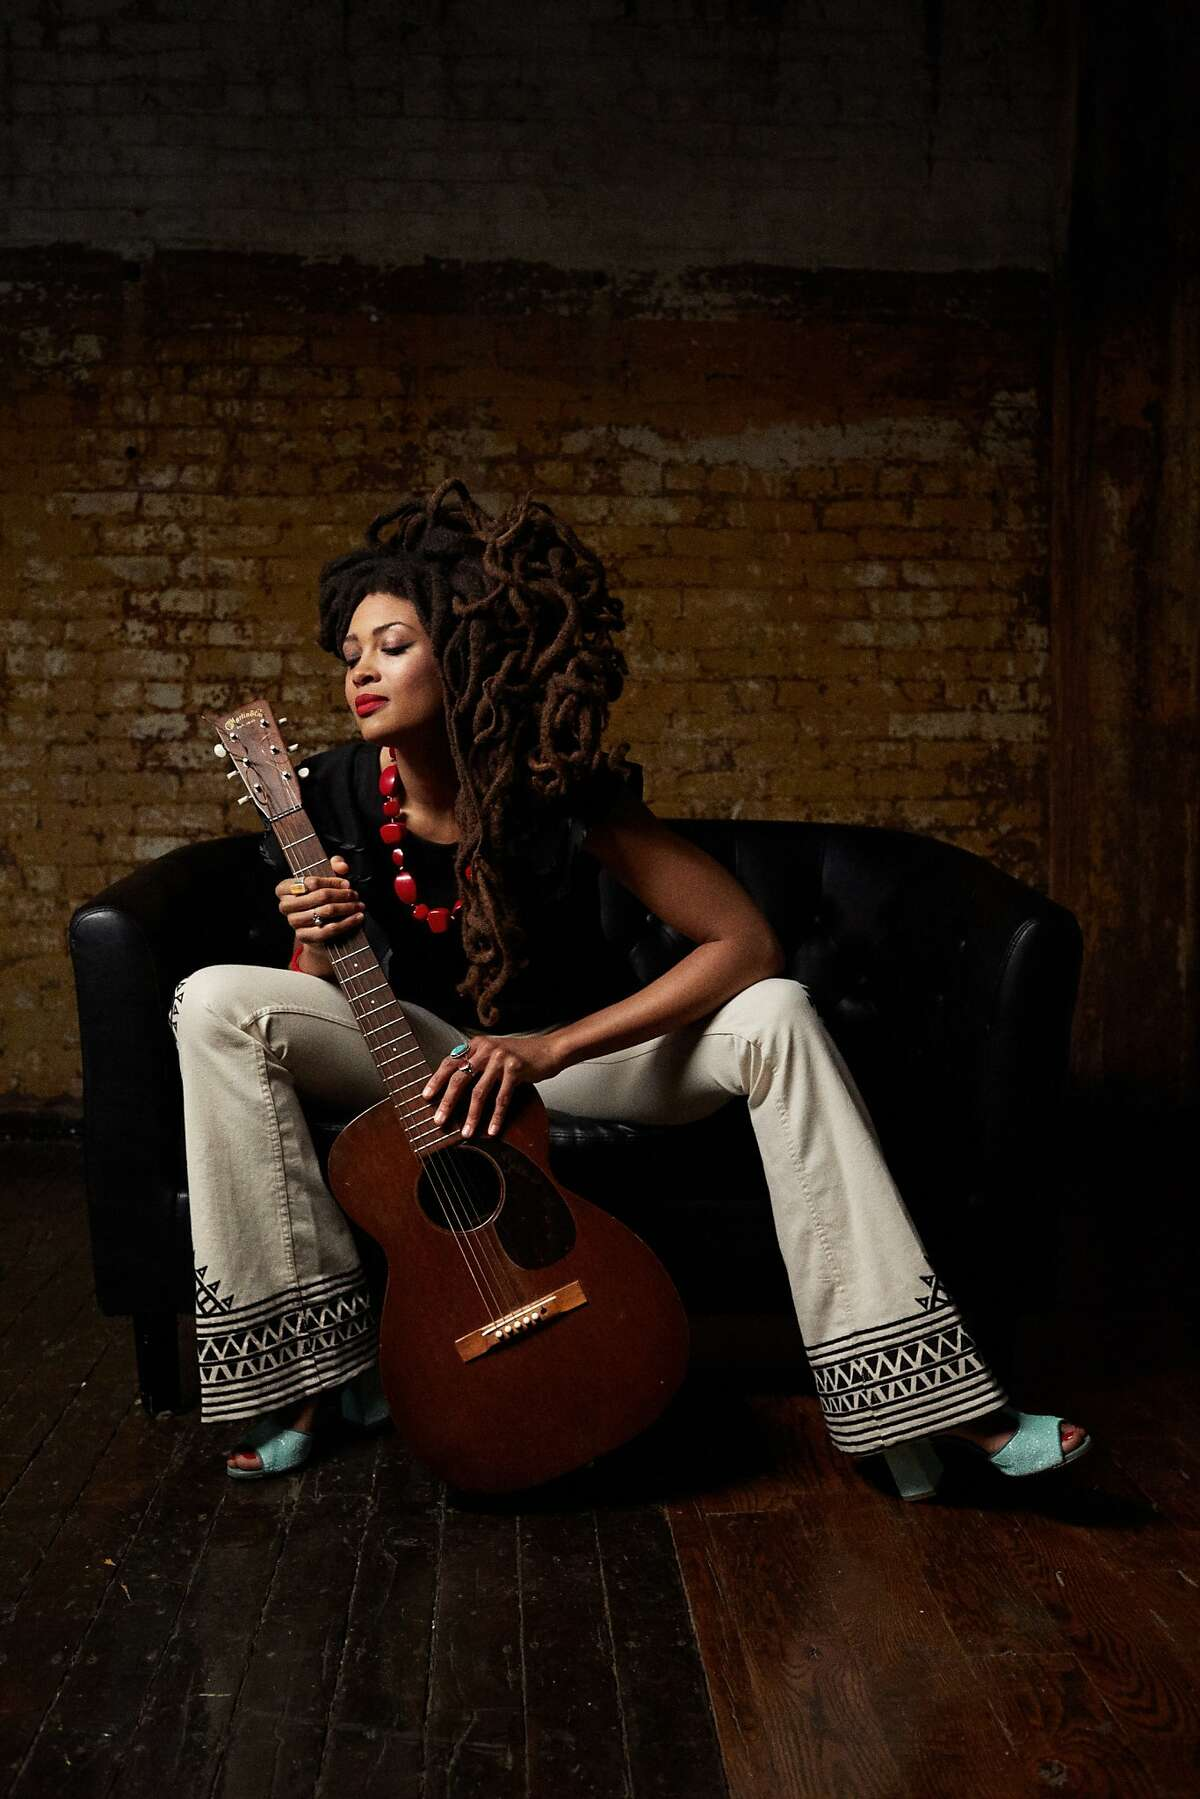 Musician Valerie June photographed by Danny Clinch